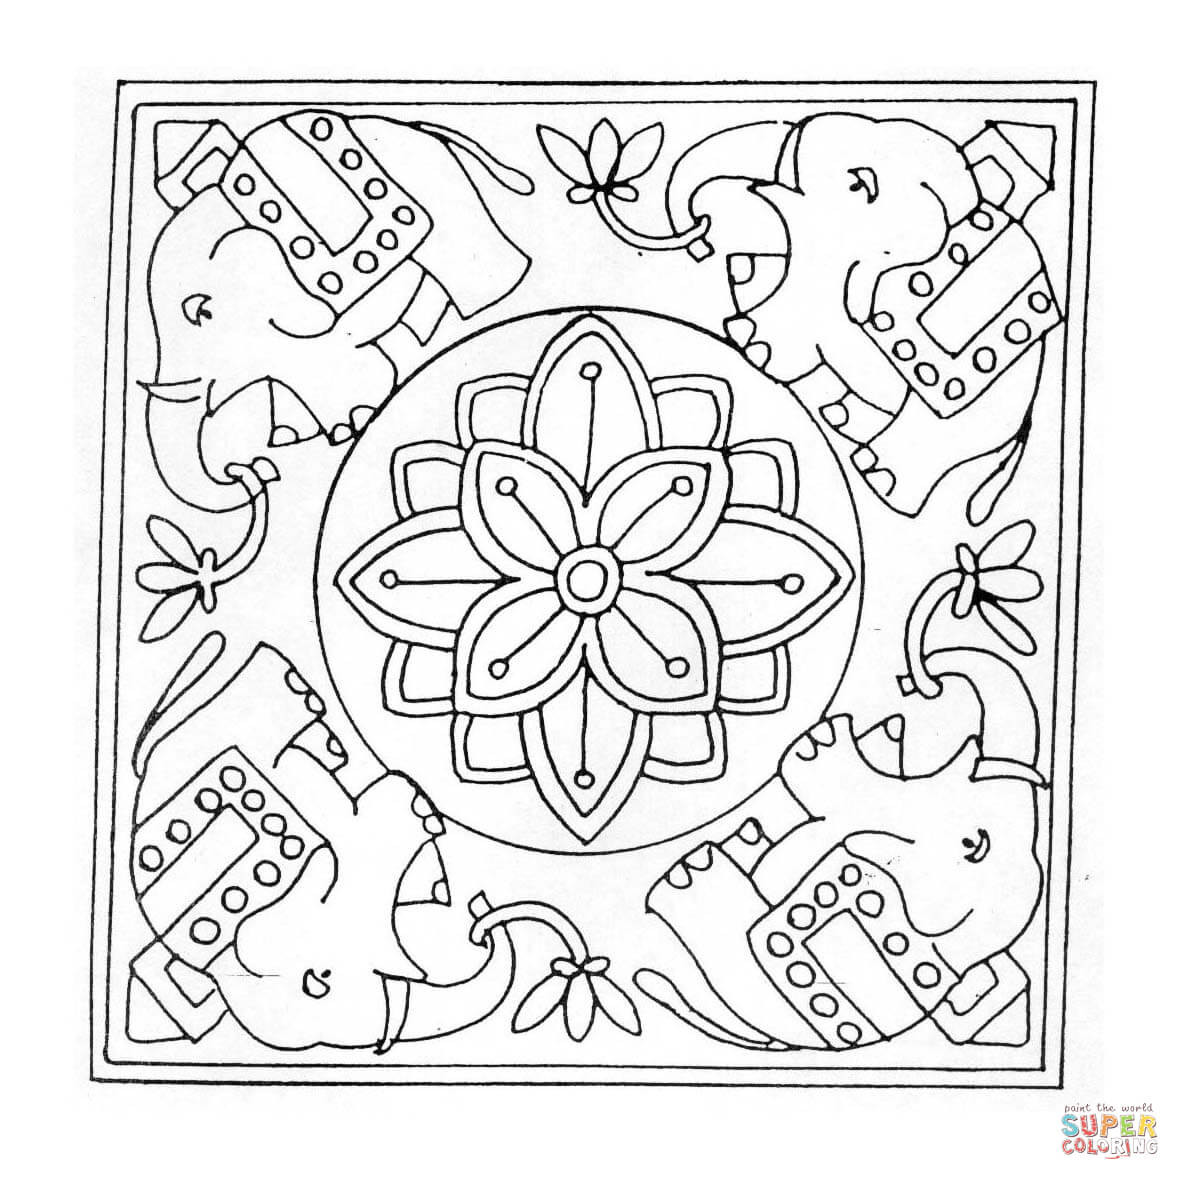 Complex Mandala Coloring Pages Printable At Getcolorings